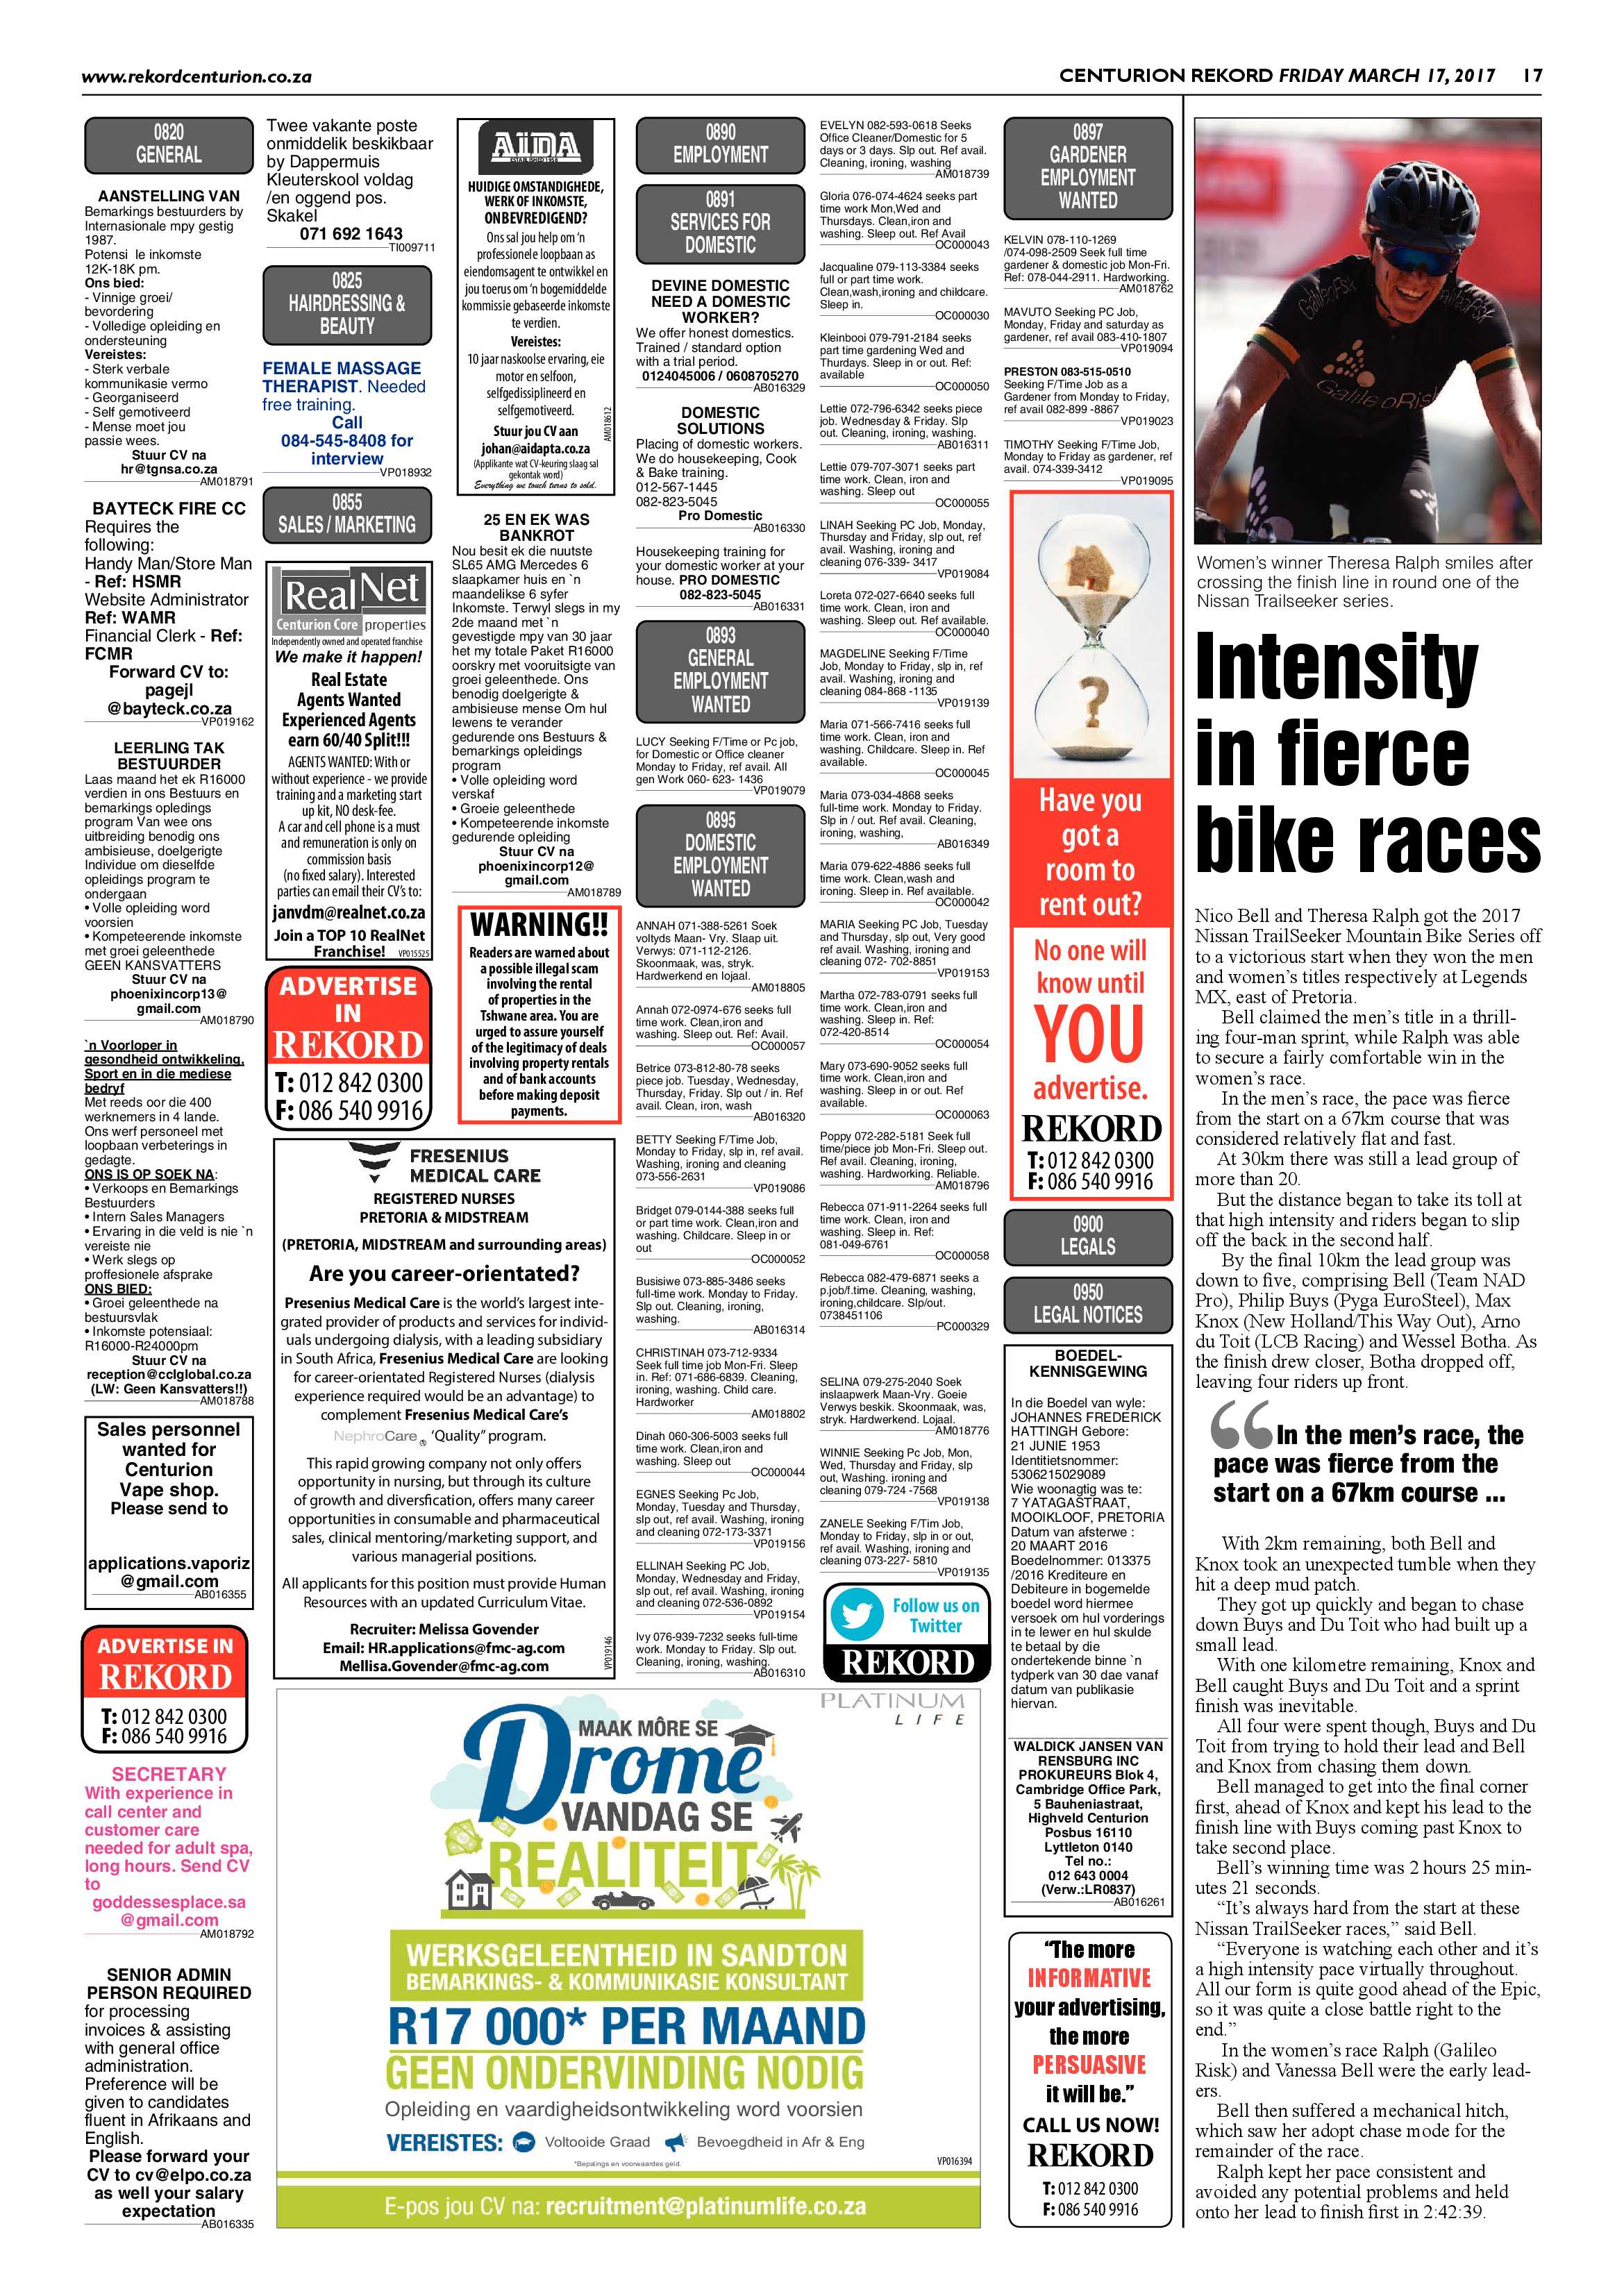 rekord-centurion-17-march-2017-epapers-page-17